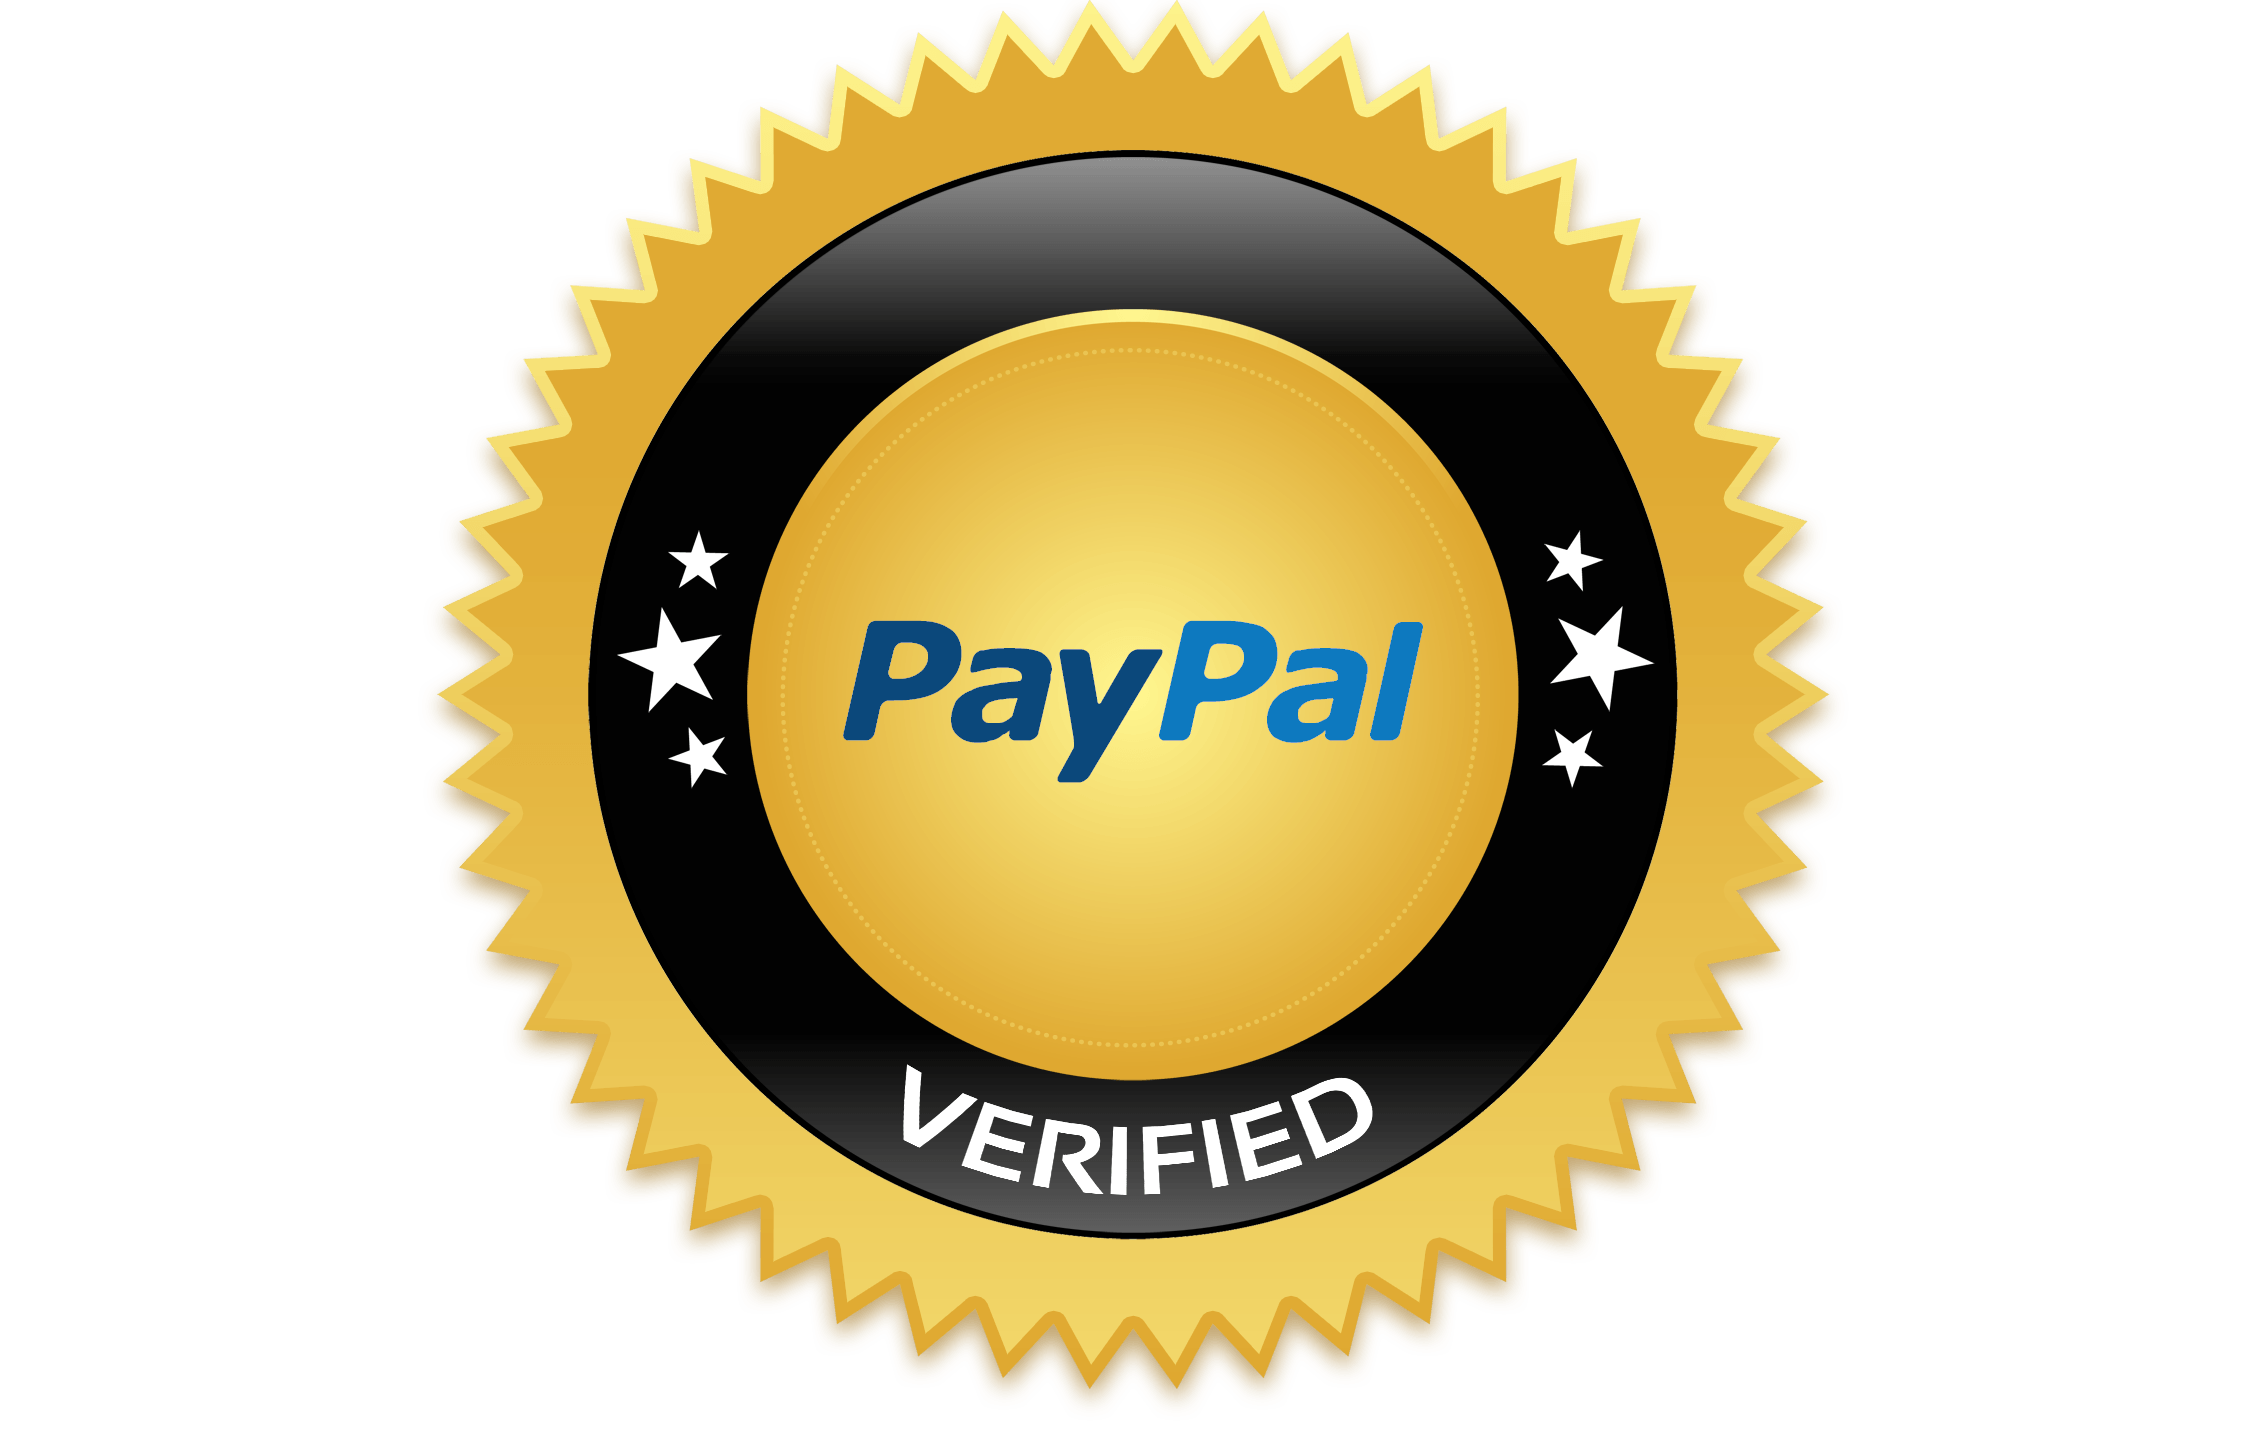 circle, orange, verified paypal logo png #2141